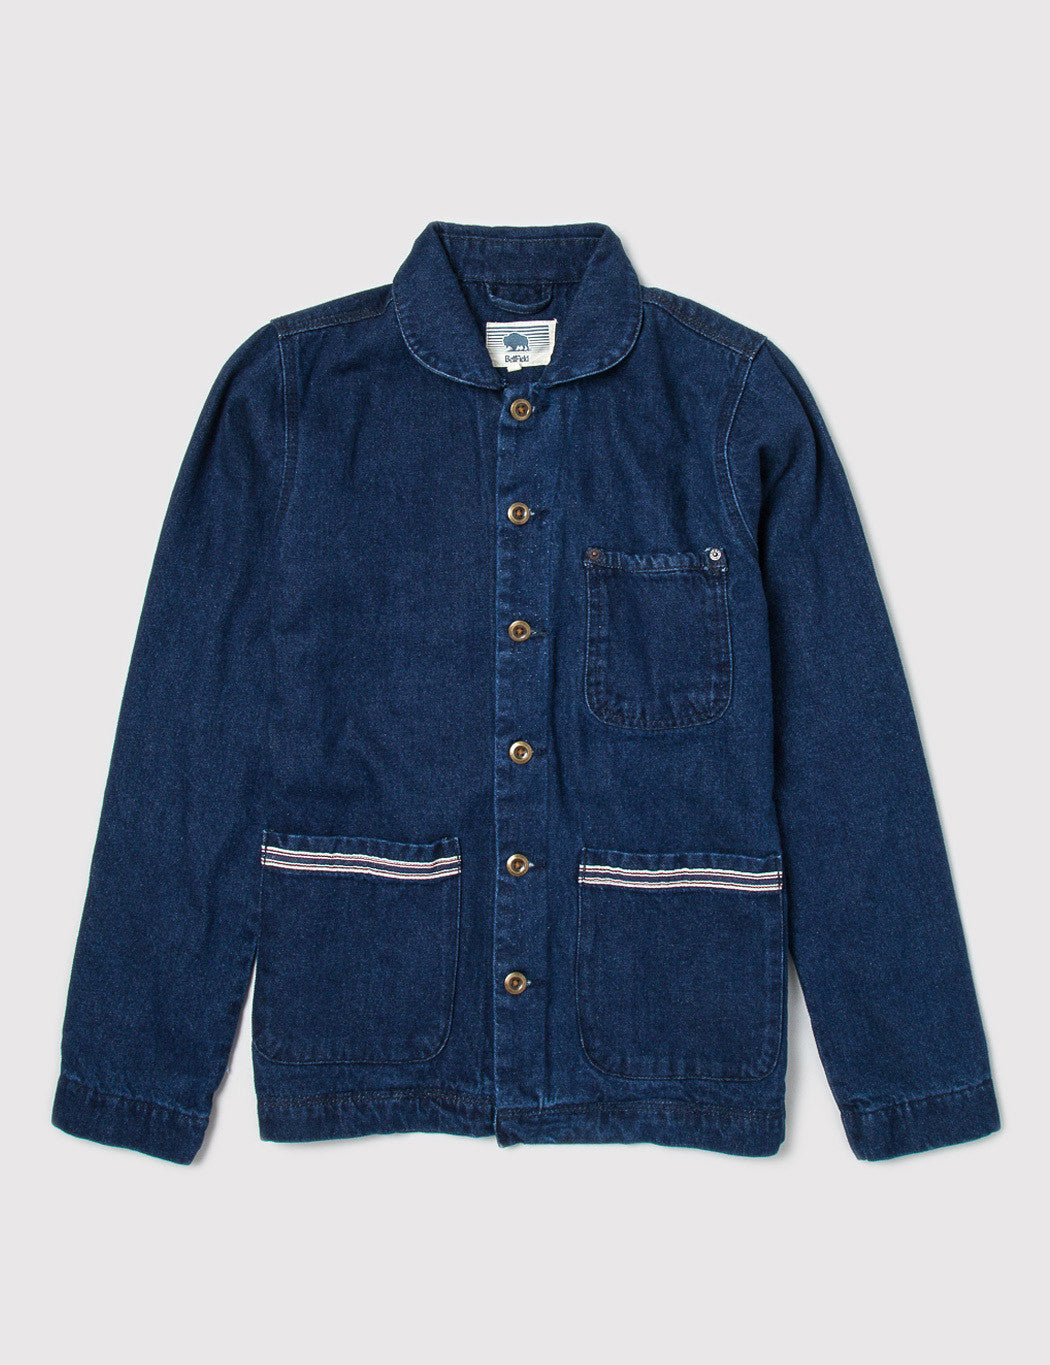 Bellfield Worker Denim Jacket - Indigo